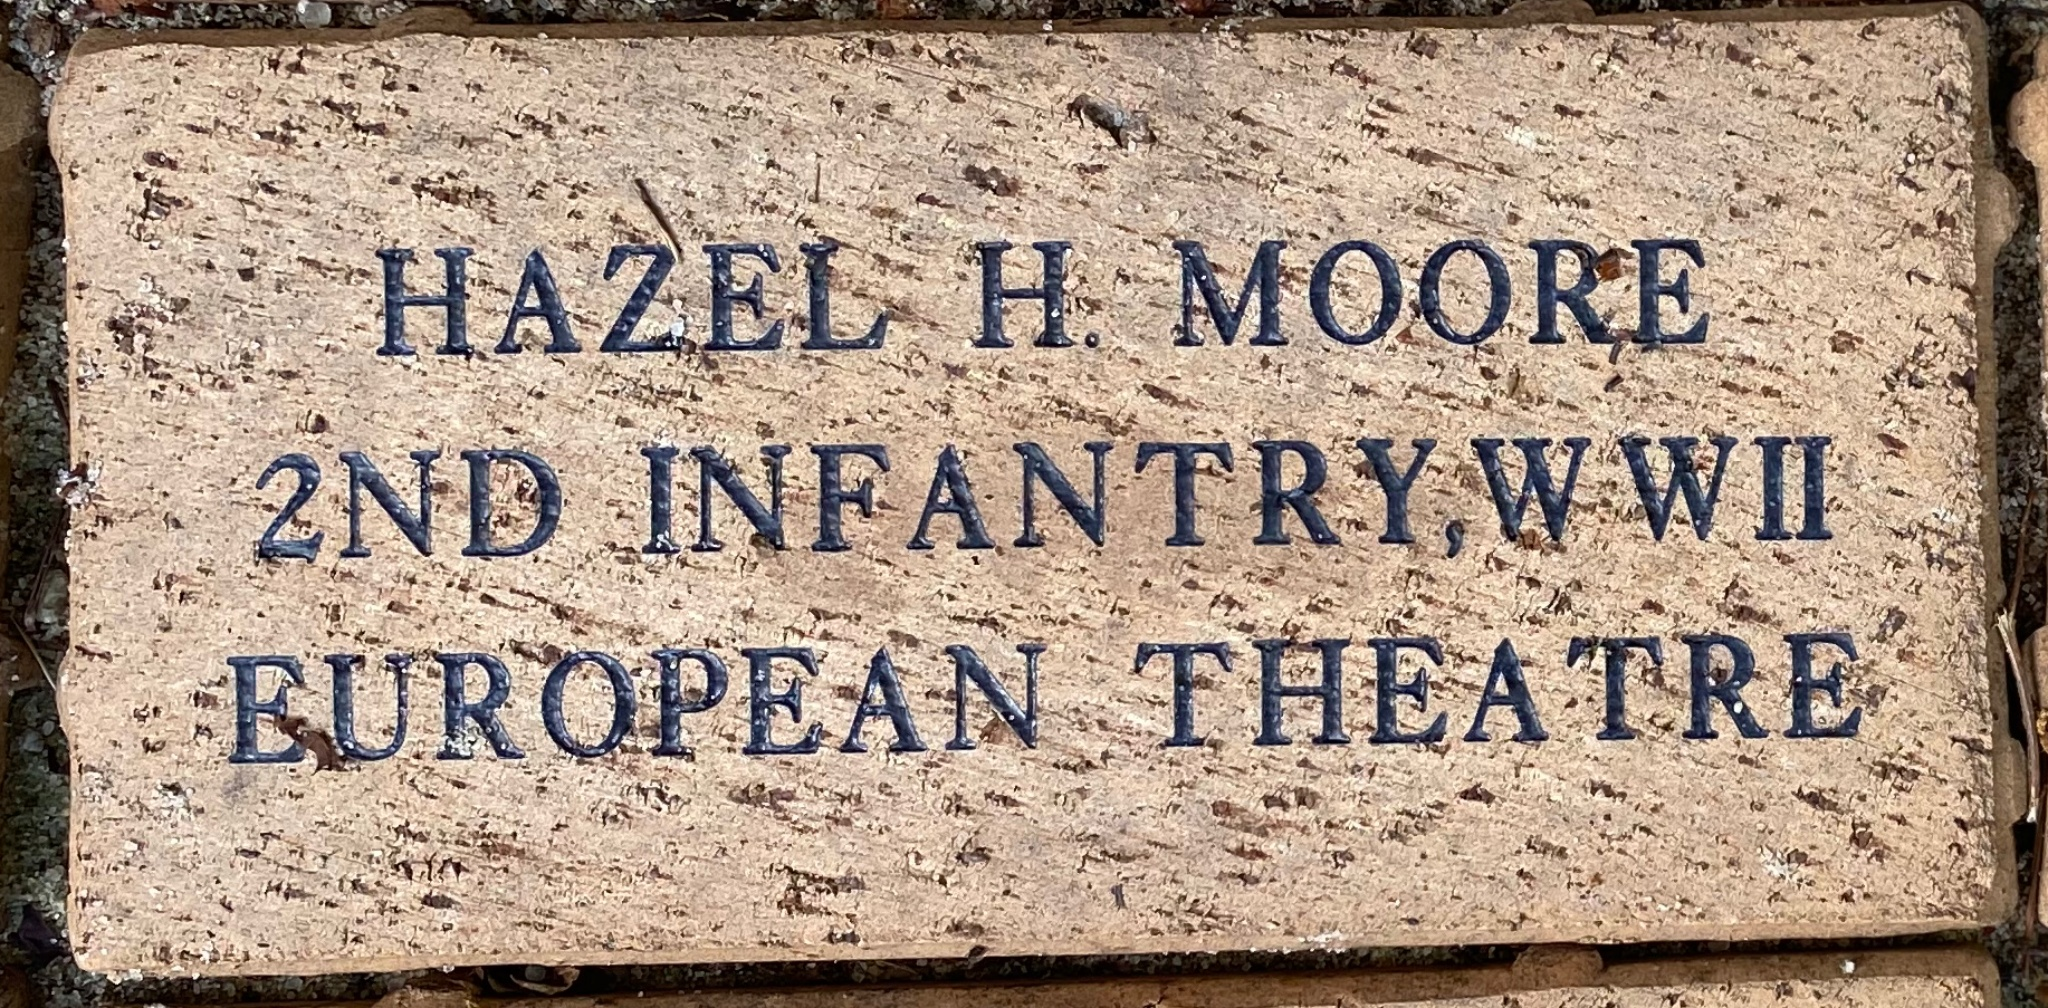 HAZEL H. MOORE 2ND INFANTRY,WWII EUROPEAN THEATRE